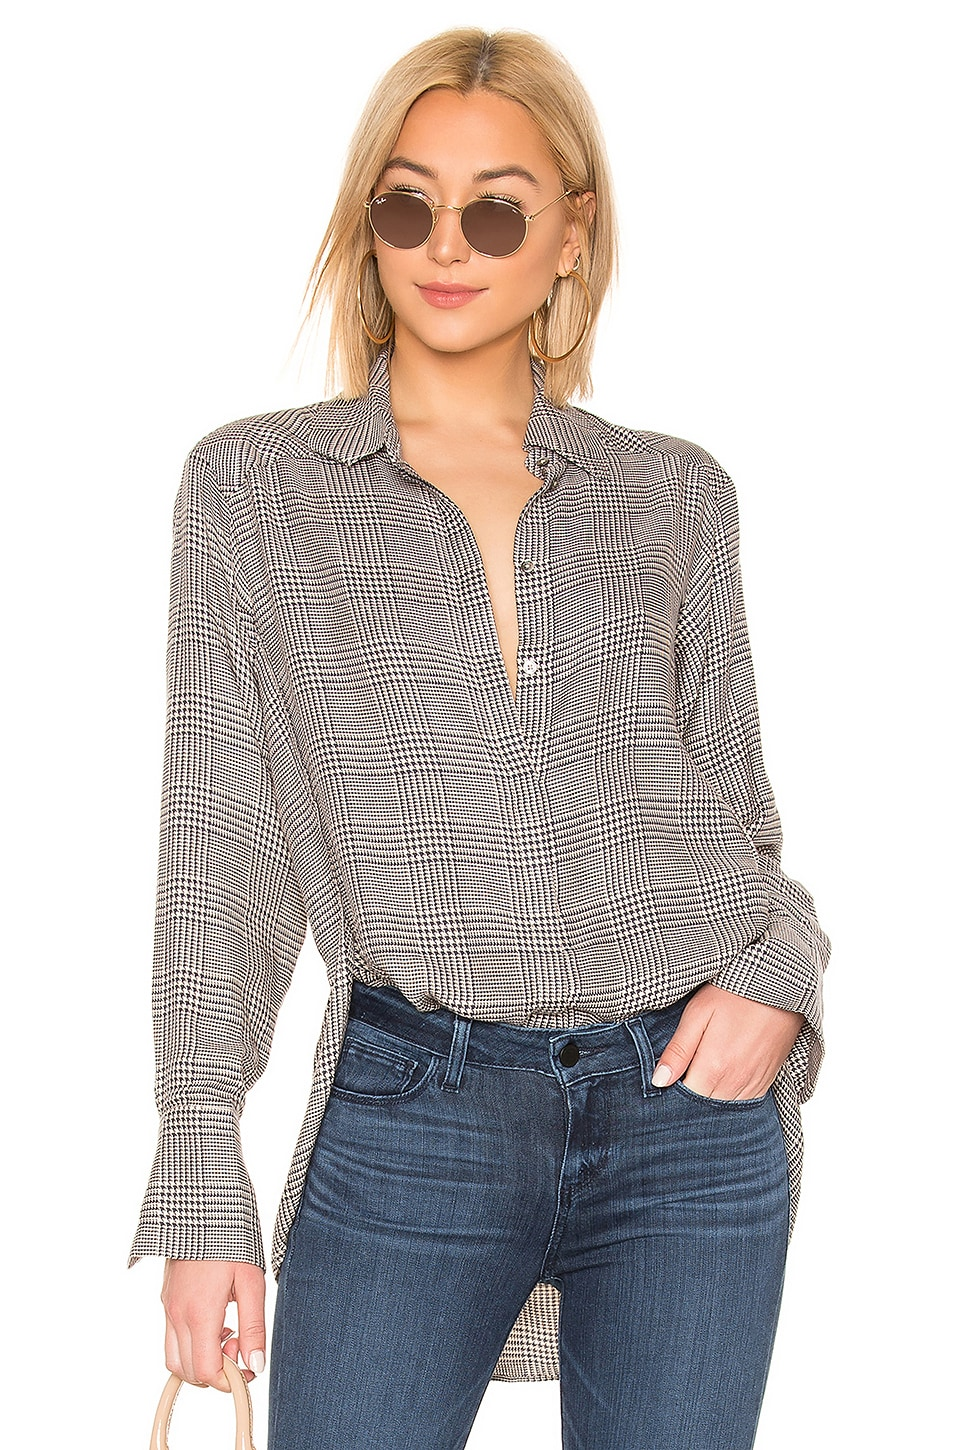 PAIGE Clemence Shirt in Cream Tan & Ombre Blue